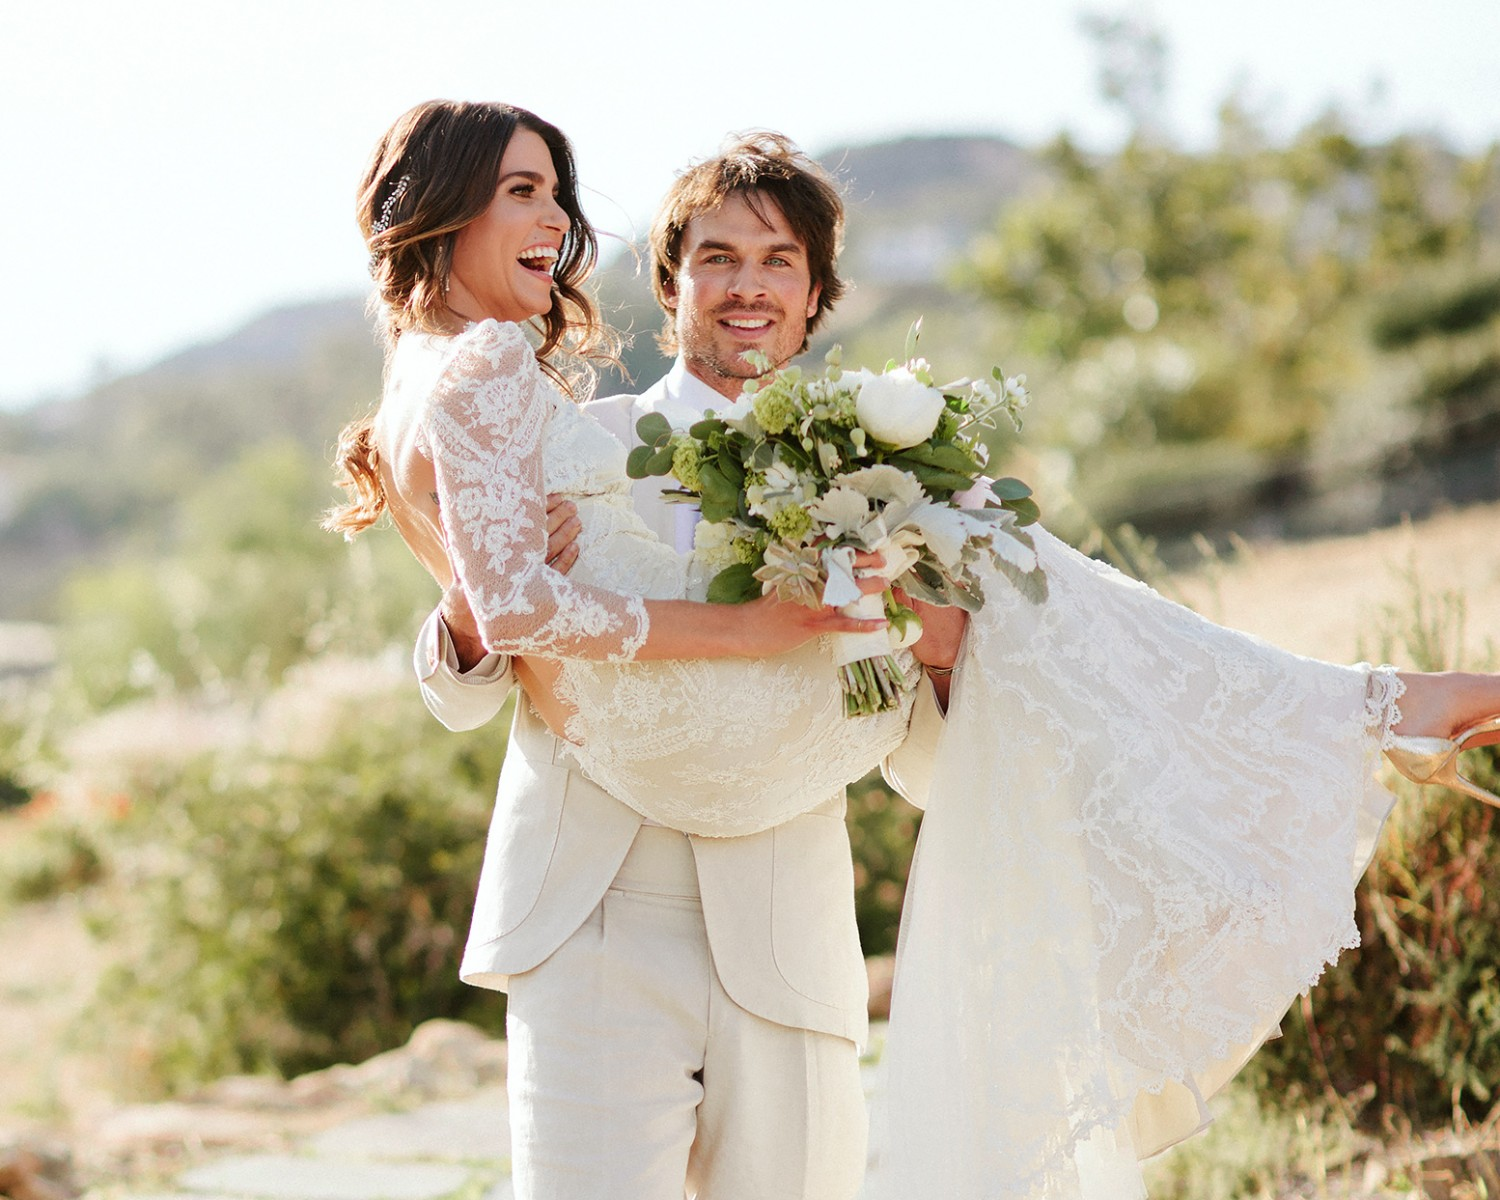 Nikki Reed and Ian Somerhalder get married in Santa Monica, California